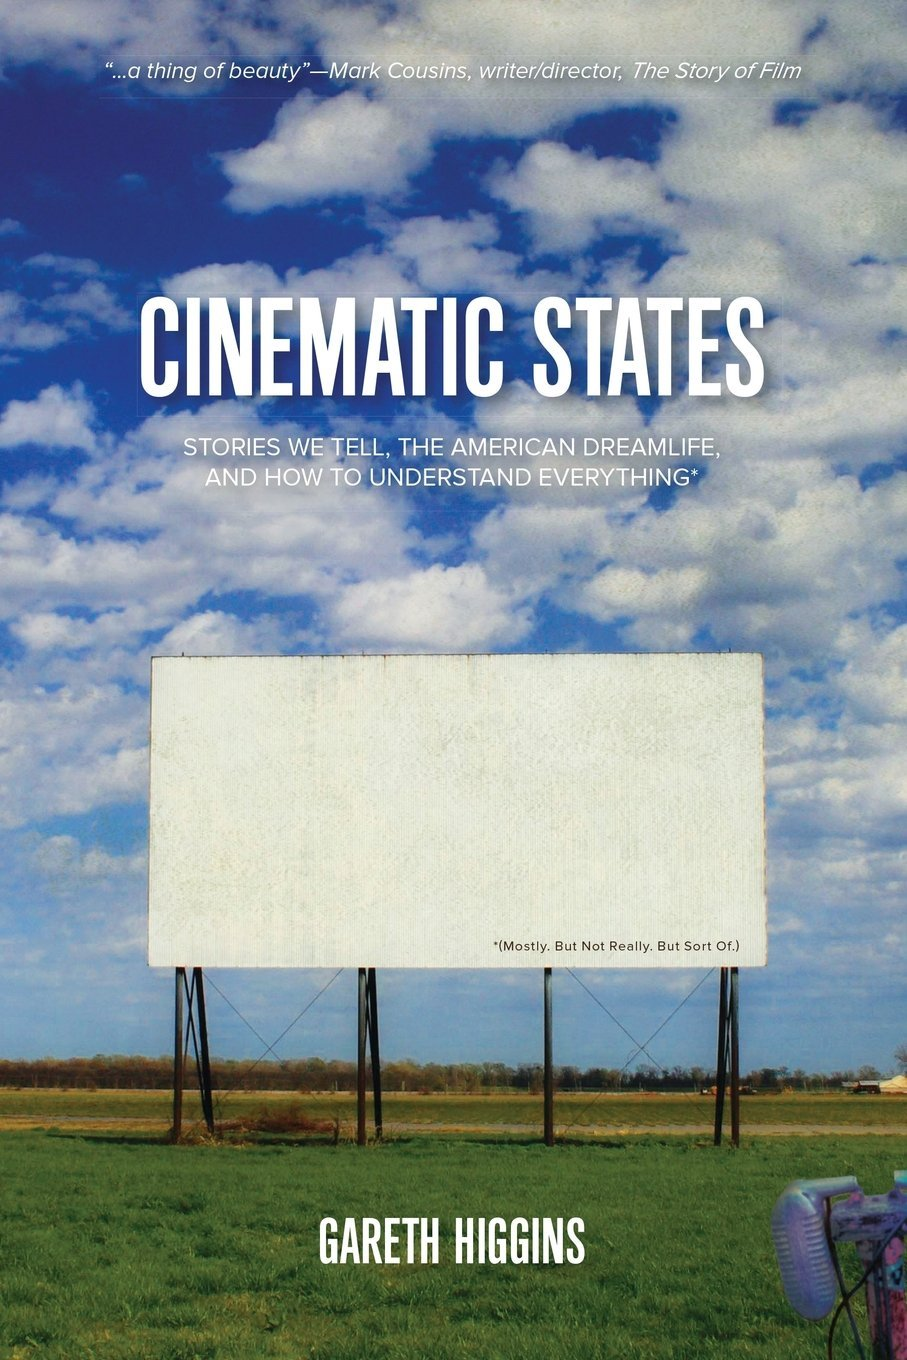 Read Online Cinematic States: Stories We Tell, the American Dreamlife, and How to Understand Everything* pdf